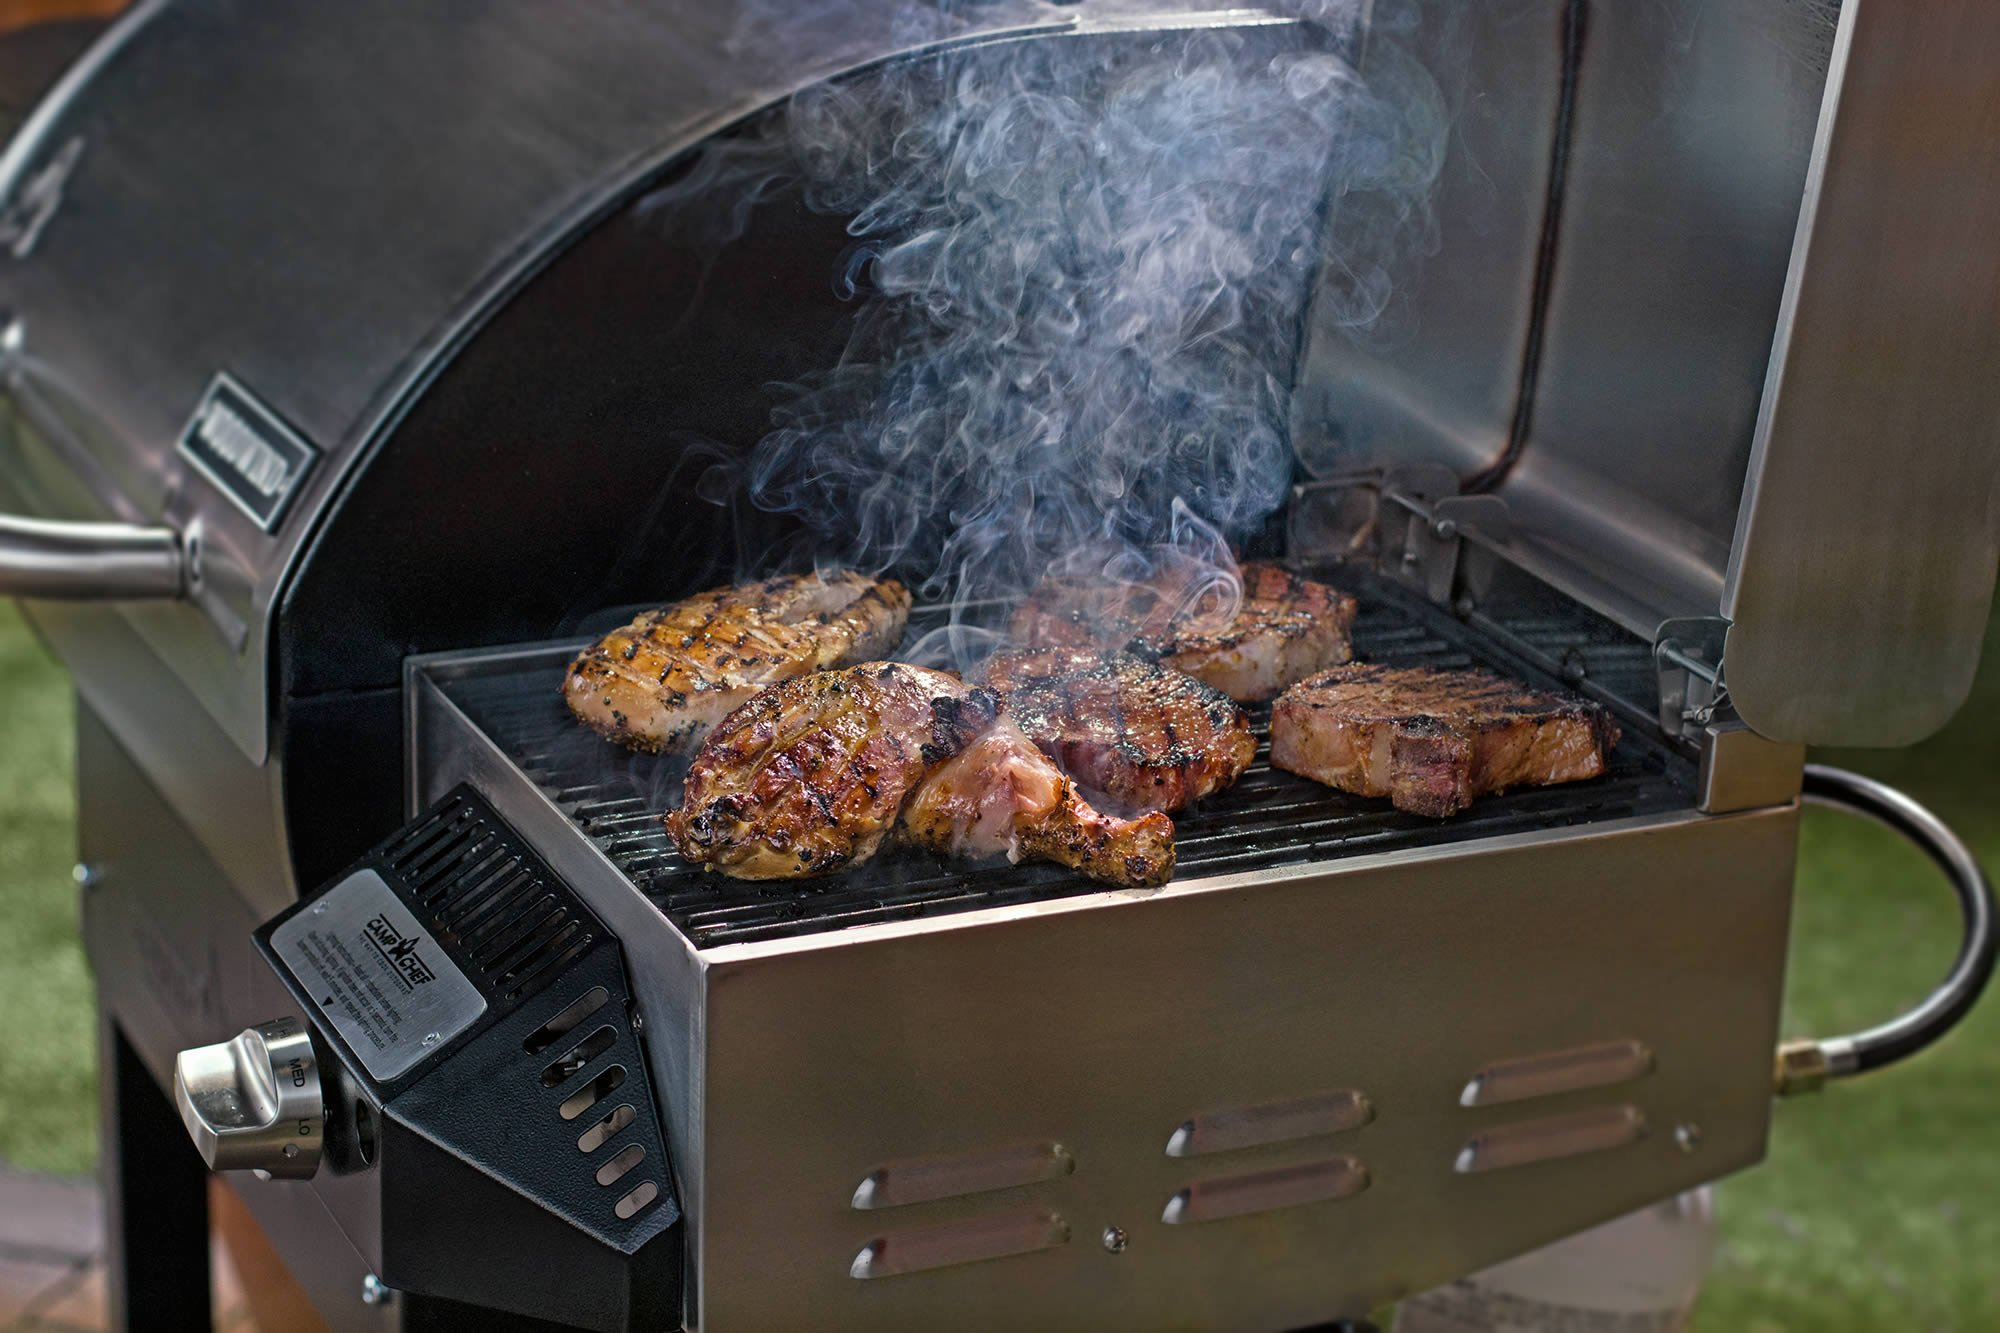 Camp Chef Woodwind Pellet Grill with Sear Box - Smart Smoke Technology - Ash Cleanout System by Camp Chef (Image #9)